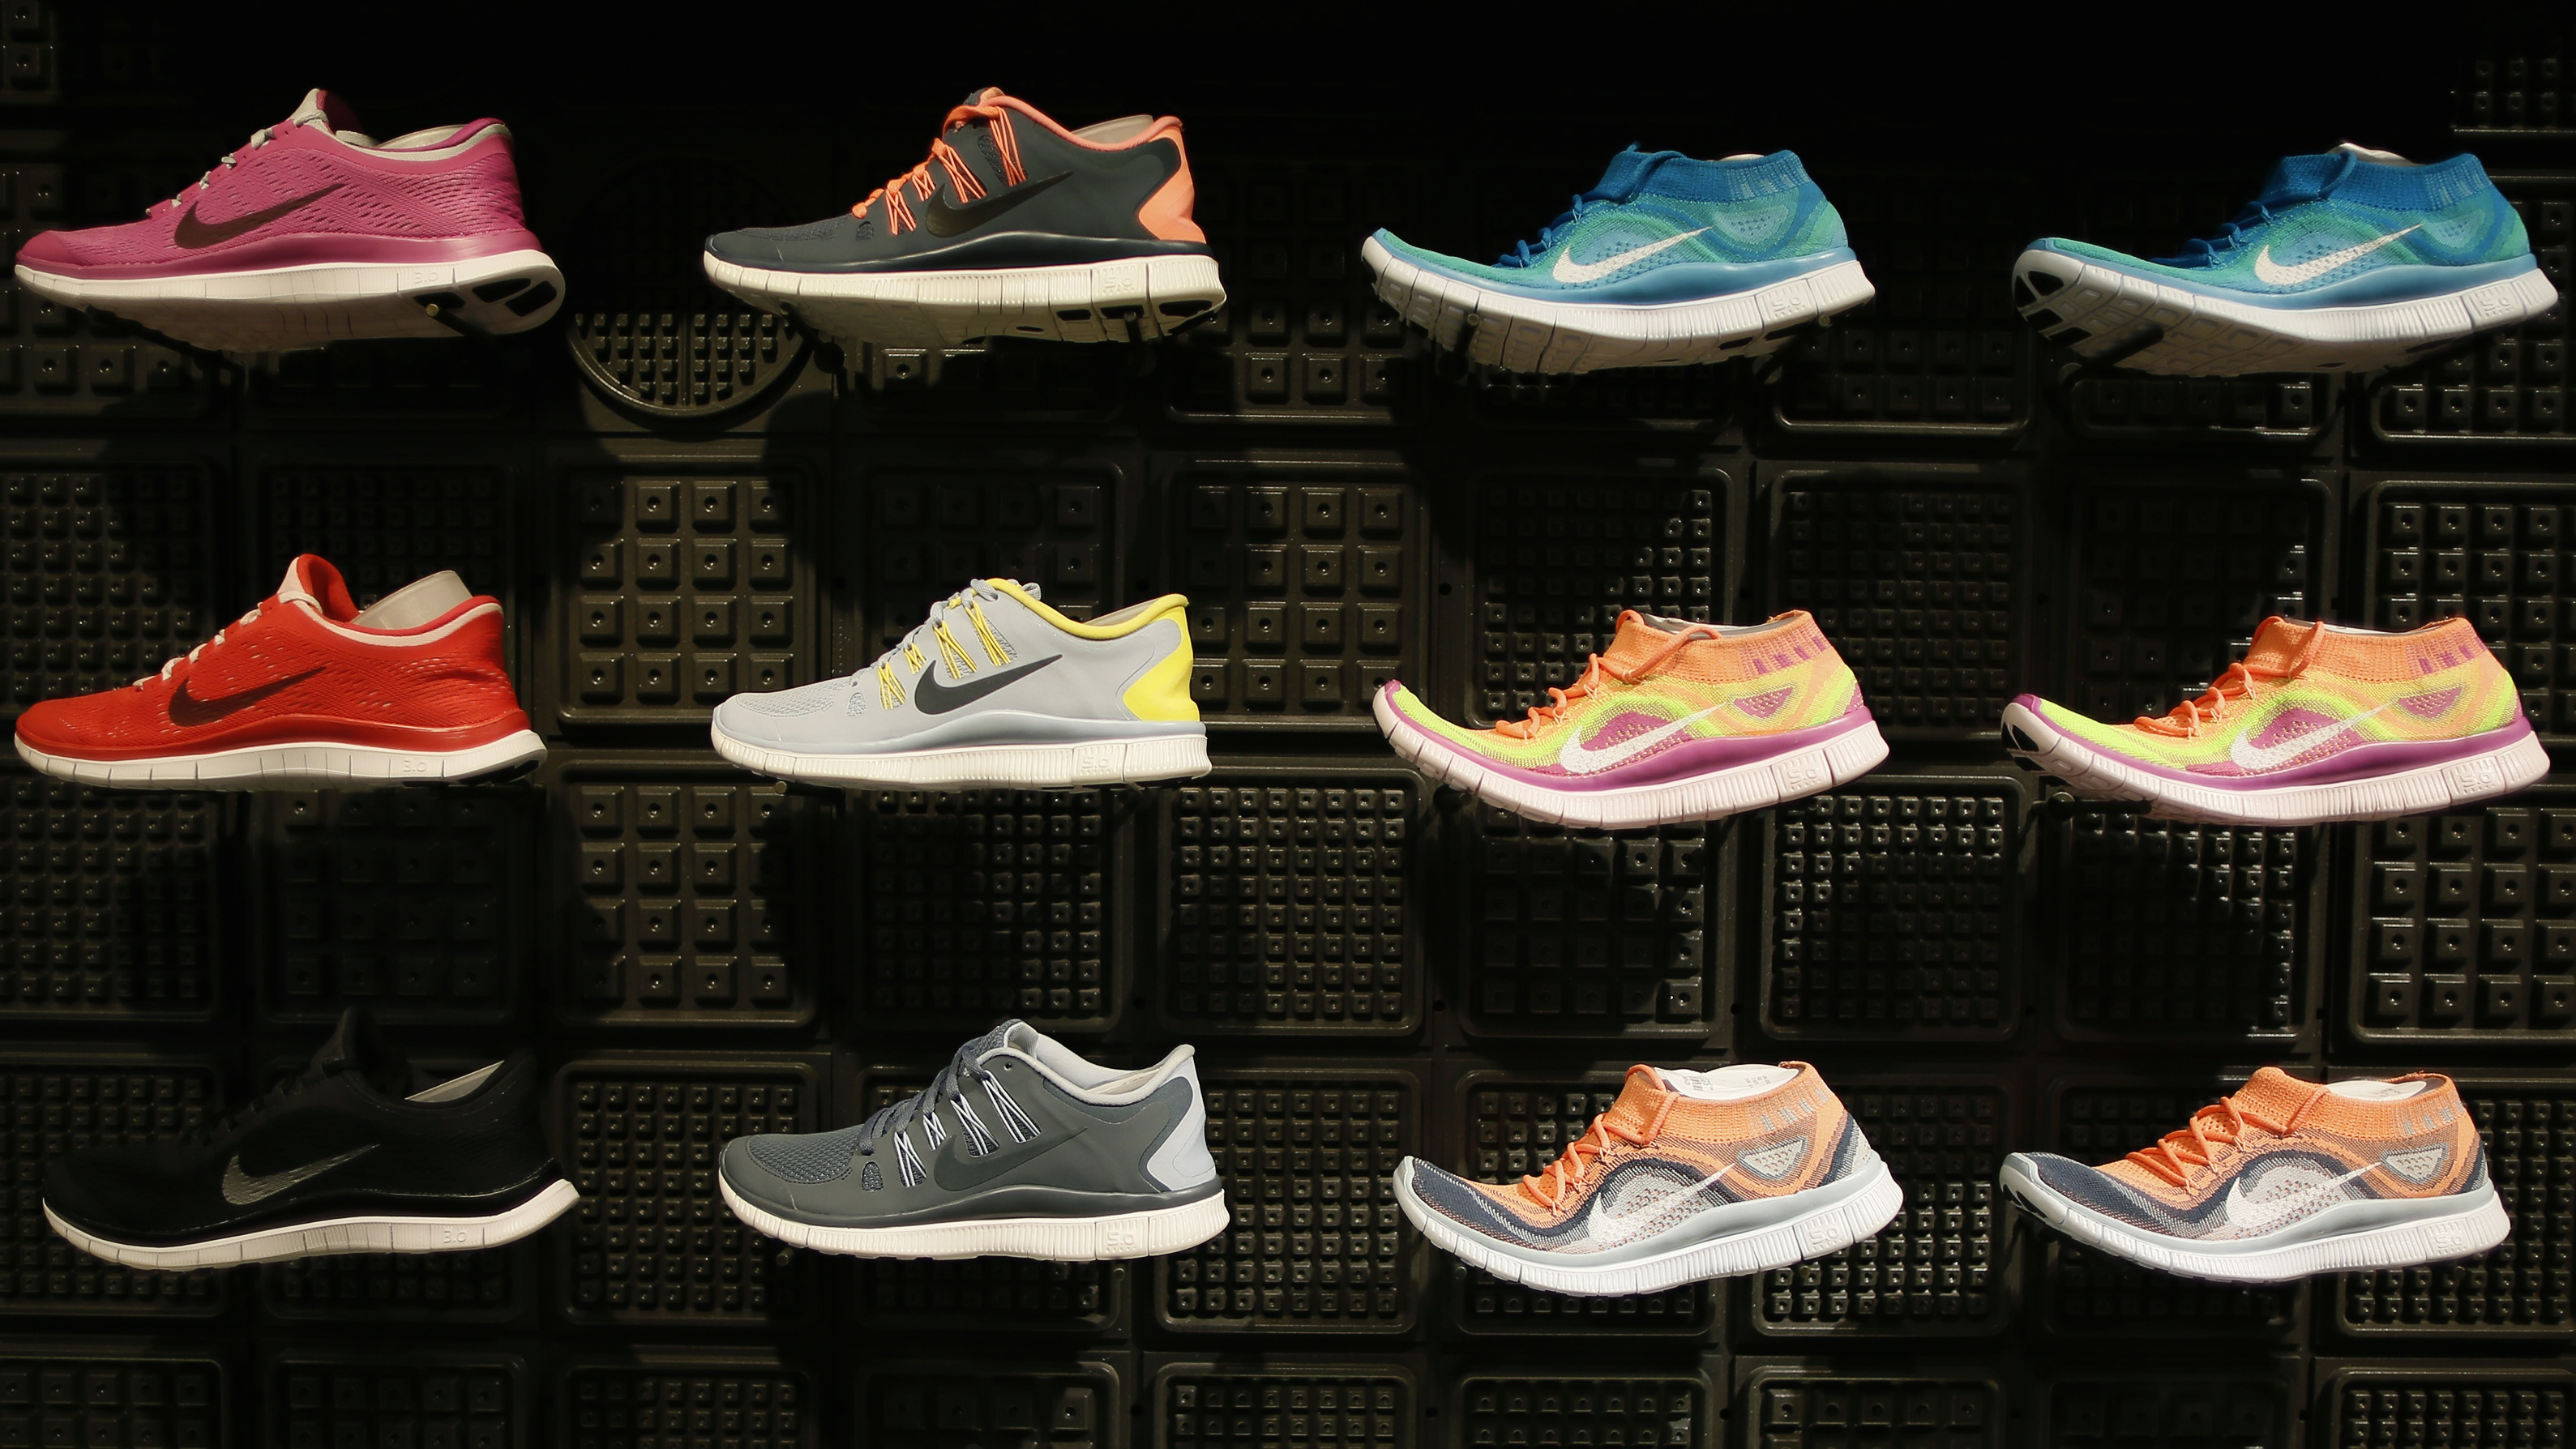 e17653d33a43 Shoes are displayed at the Nike store in Santa Monica, California,  September 25,